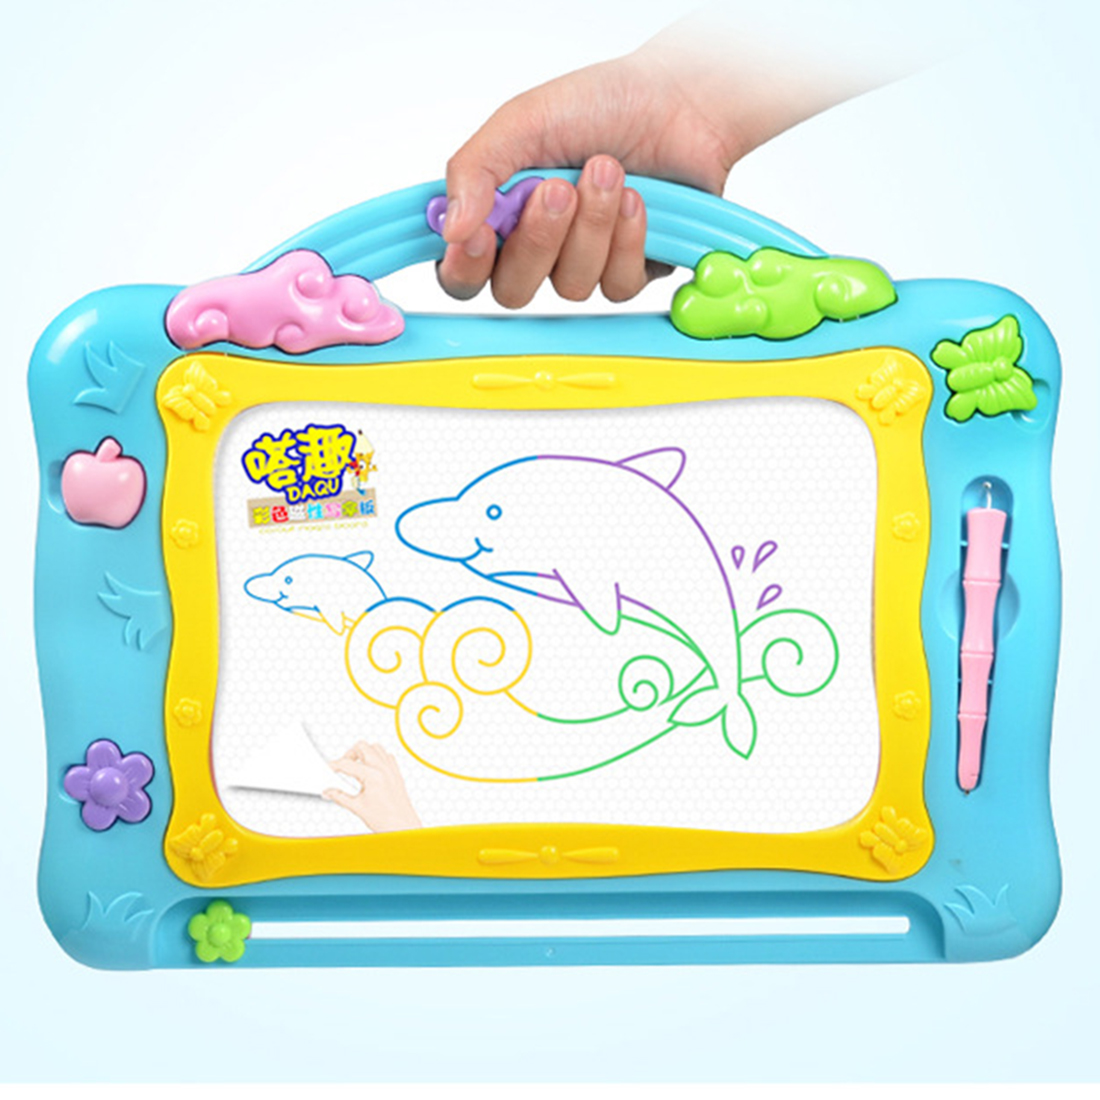 Magnetic Drawing Toys Learning Enlightenment Graphics Tablet For Children Educational Painting Board Drawing Gift- Color Random